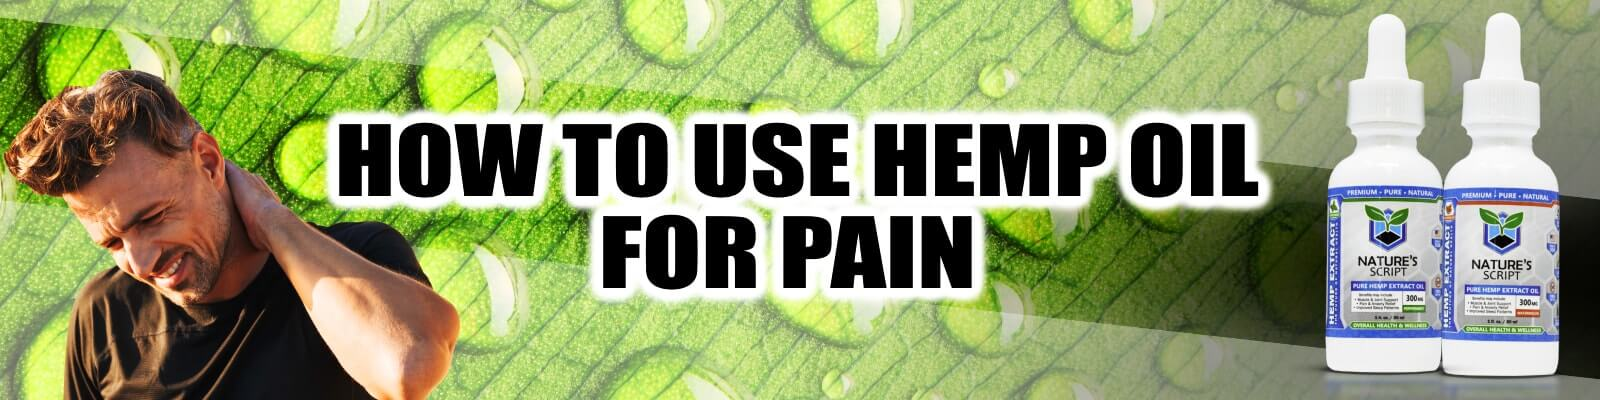 how to use hemp oil for pain